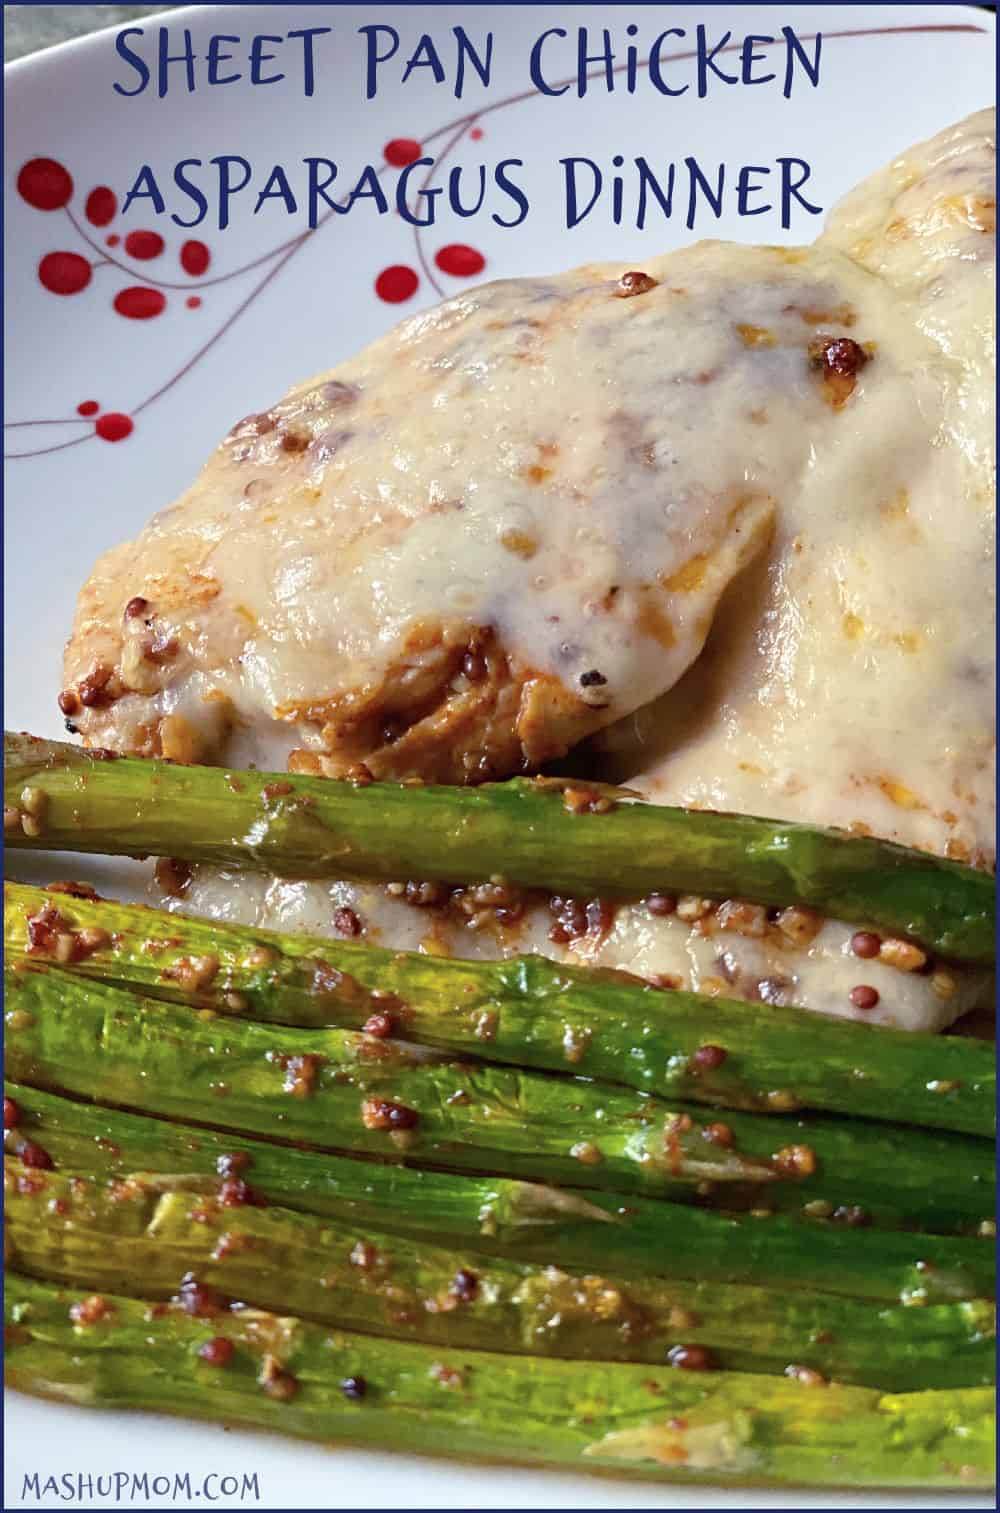 Sheet pan chicken asparagus dinner is an easy, keto friendly one pan weeknight meal.